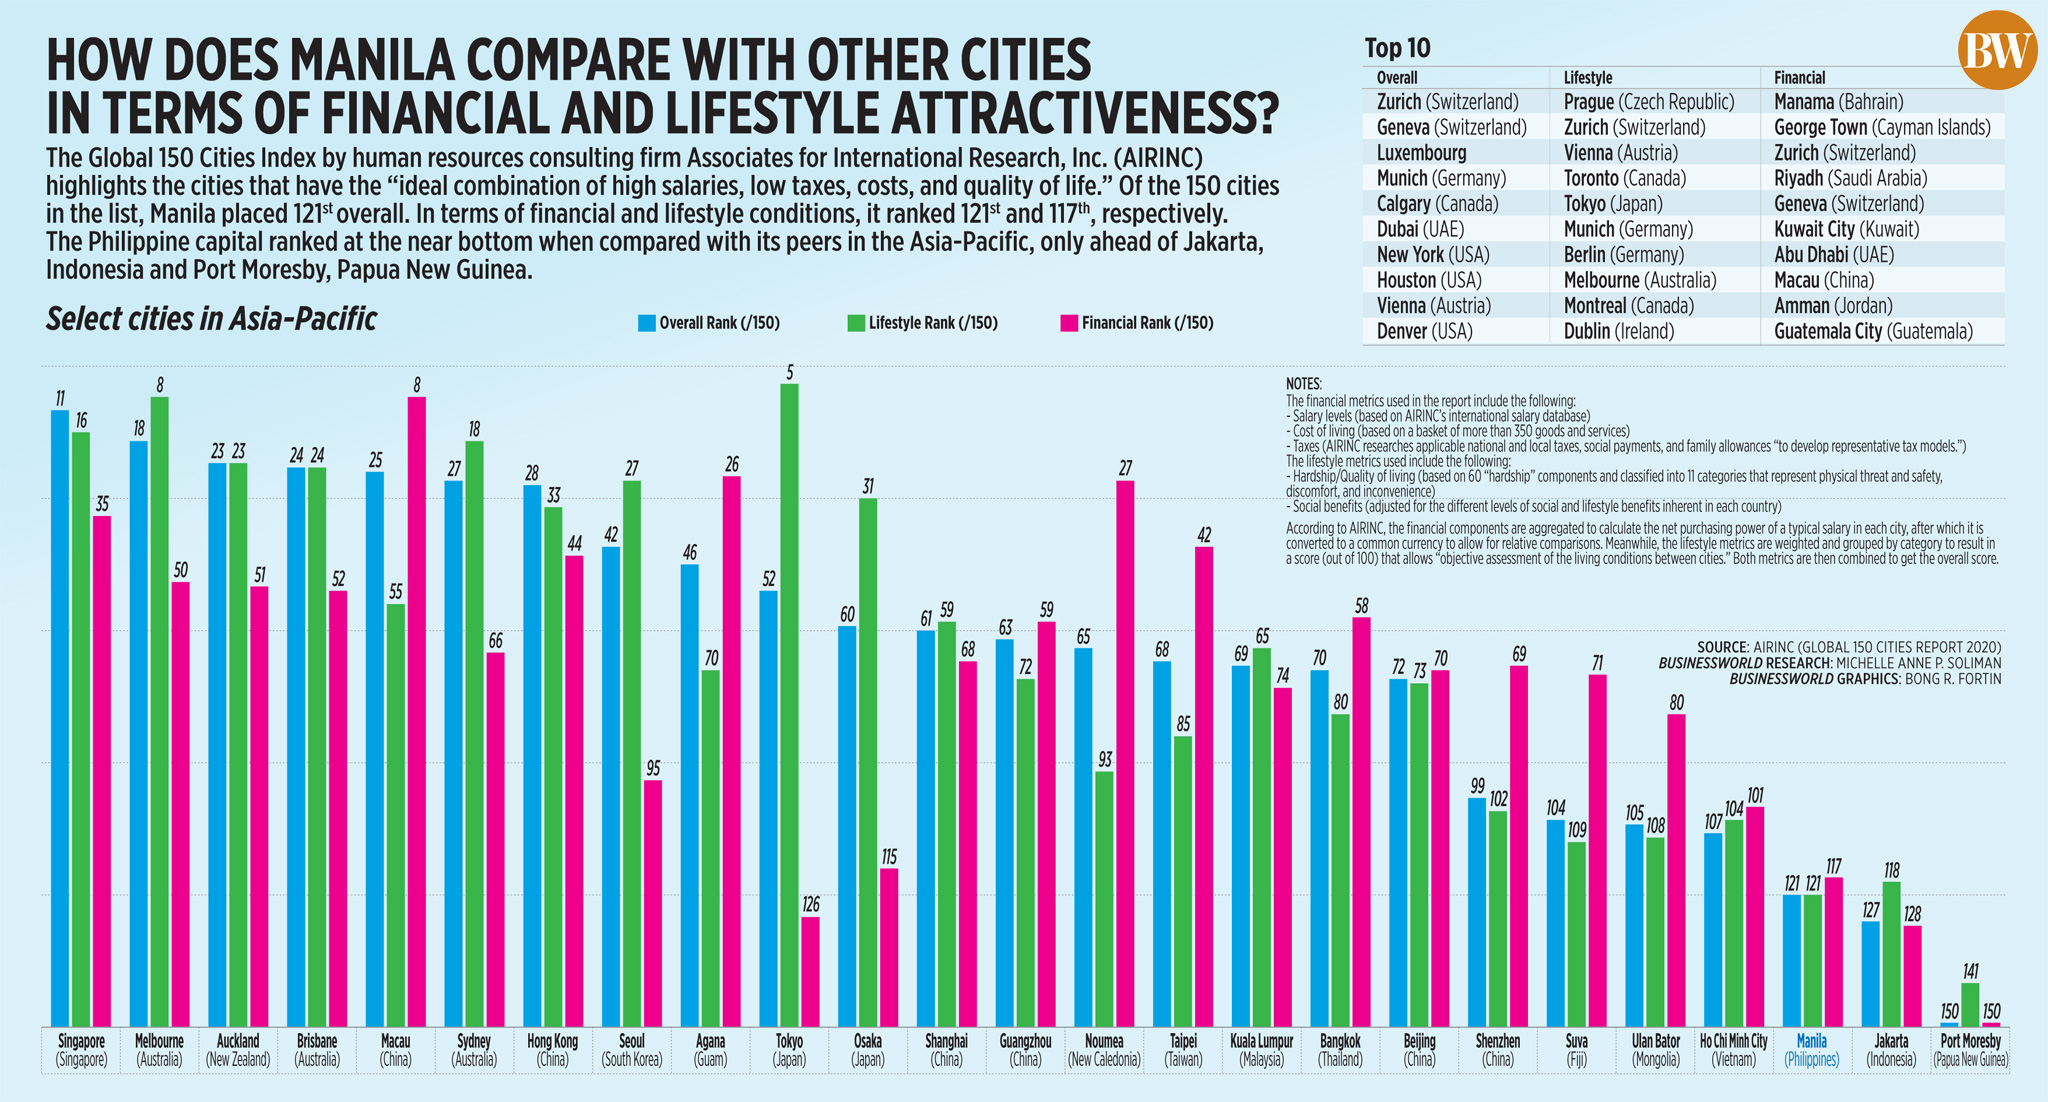 How does Manila compare with other cities in terms of financial and lifestyle attractiveness?